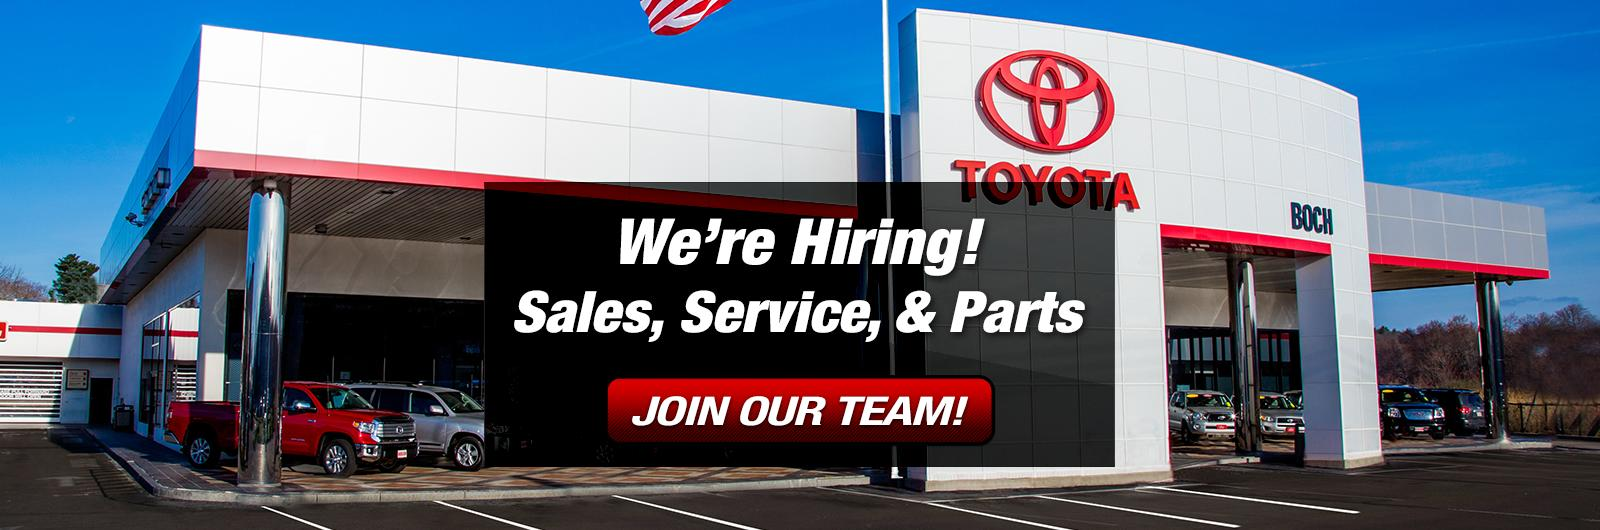 Boch toyota norwood service for Boch honda norwood service